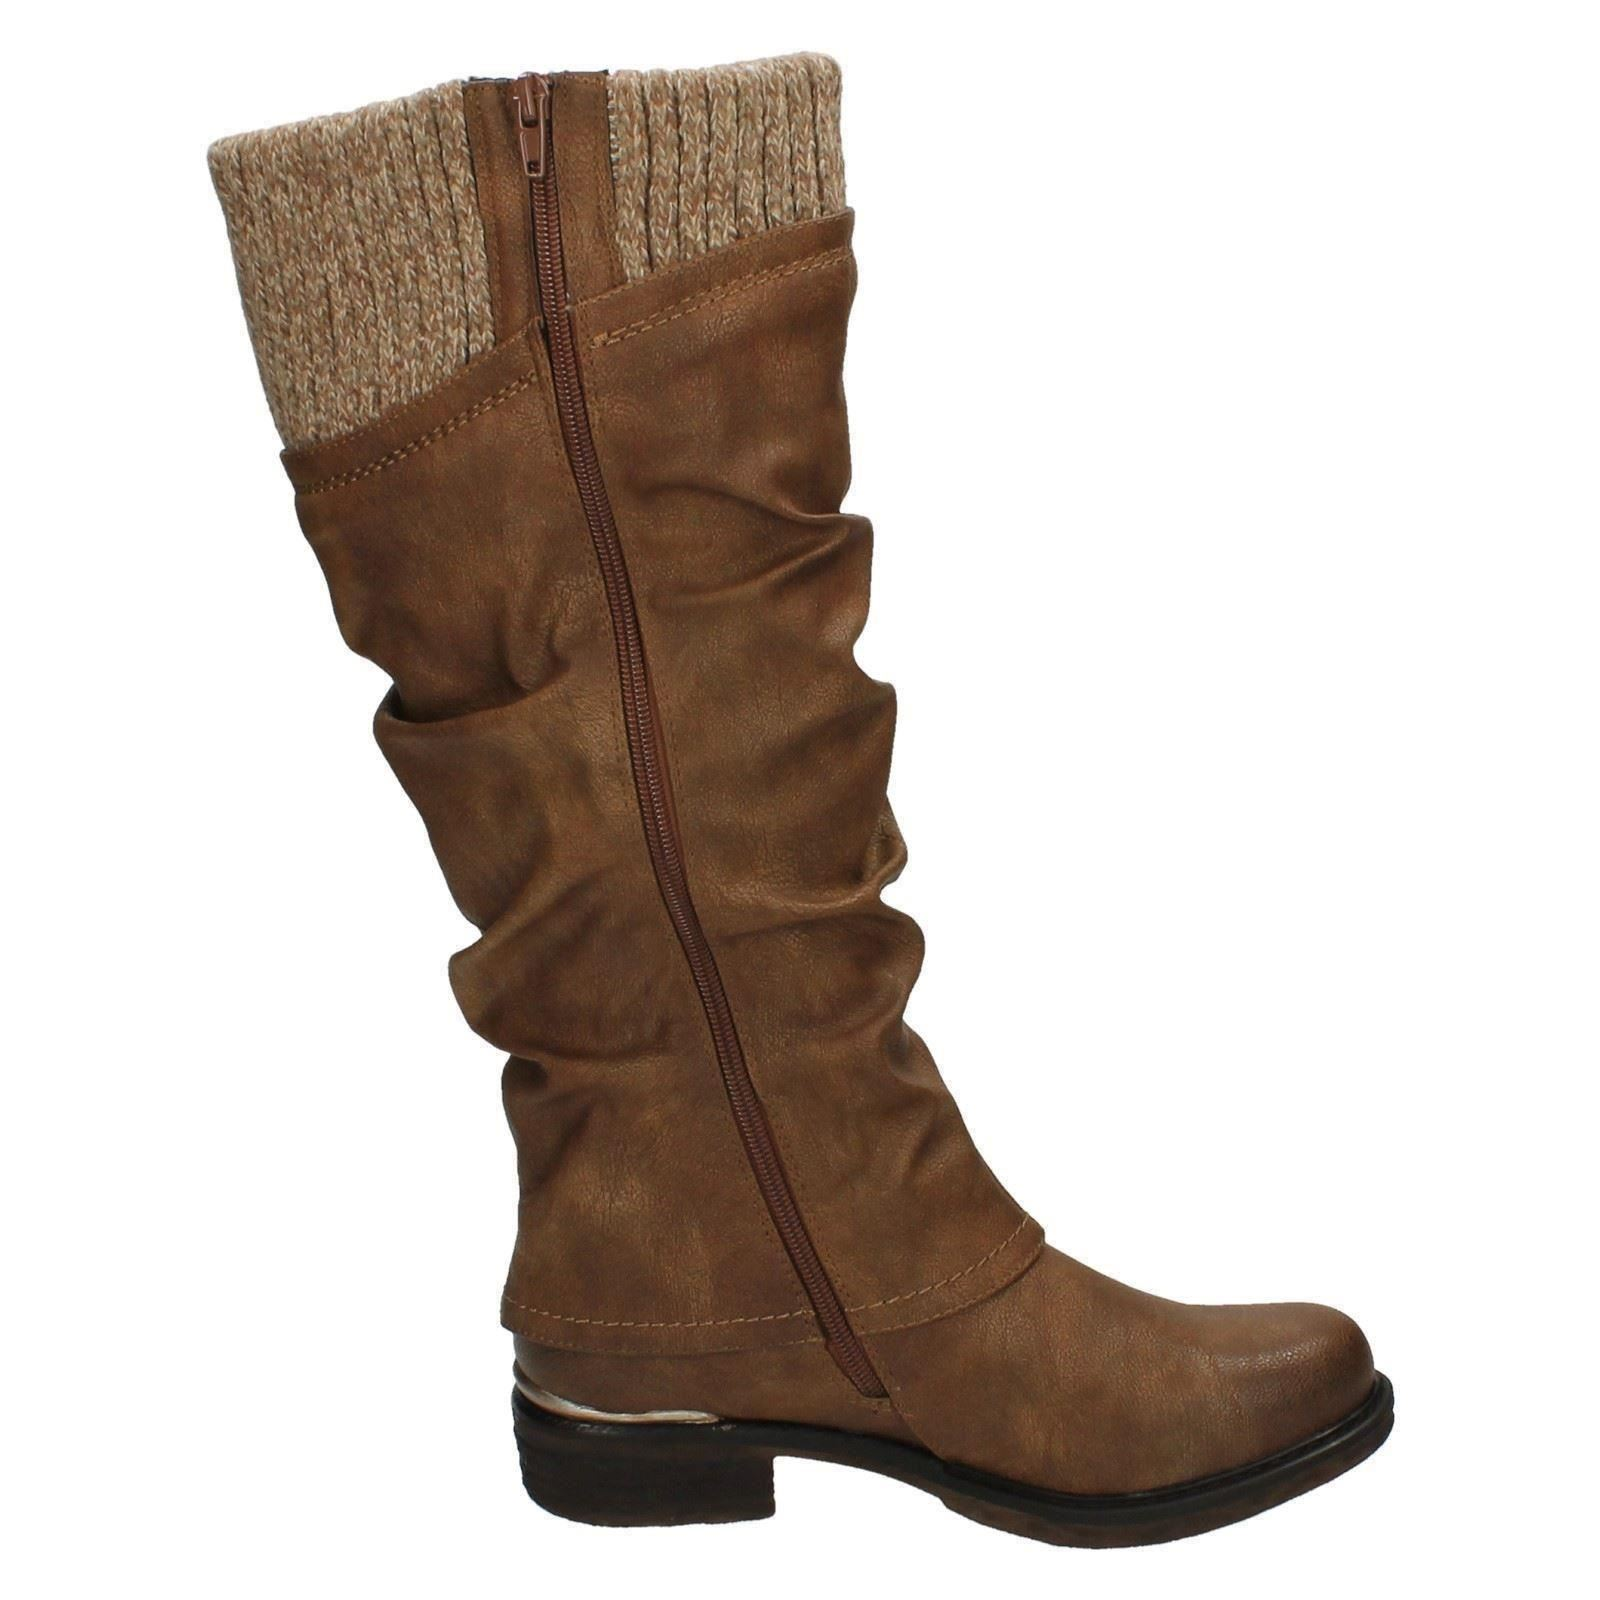 Ladies Rieker All Weather Long Boots 98956 Ebay